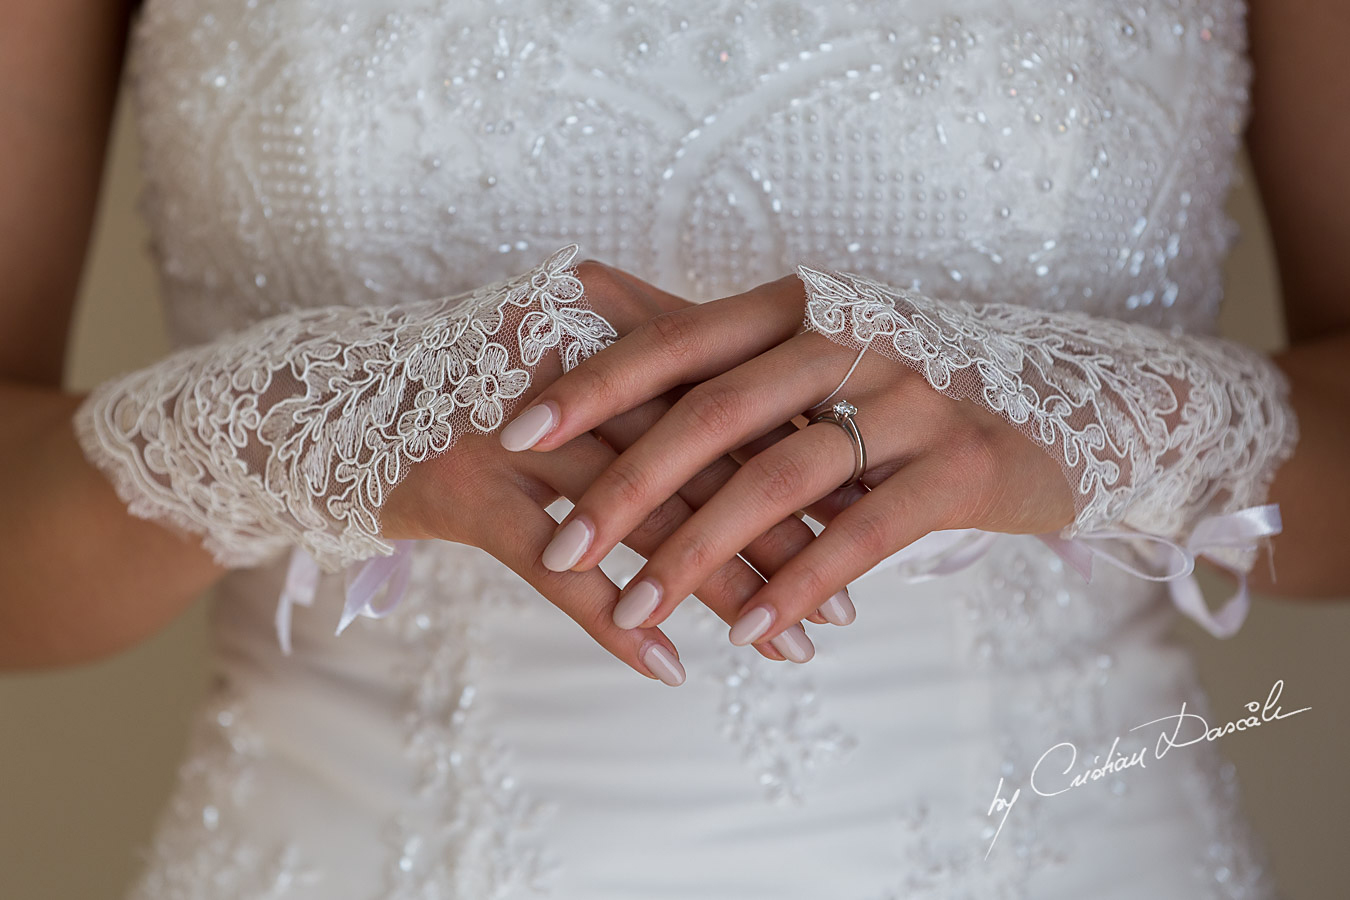 Bridal details photographed at Elias Beach Hotel in Limassol, Cyprus by photographer Cristian Dascalu